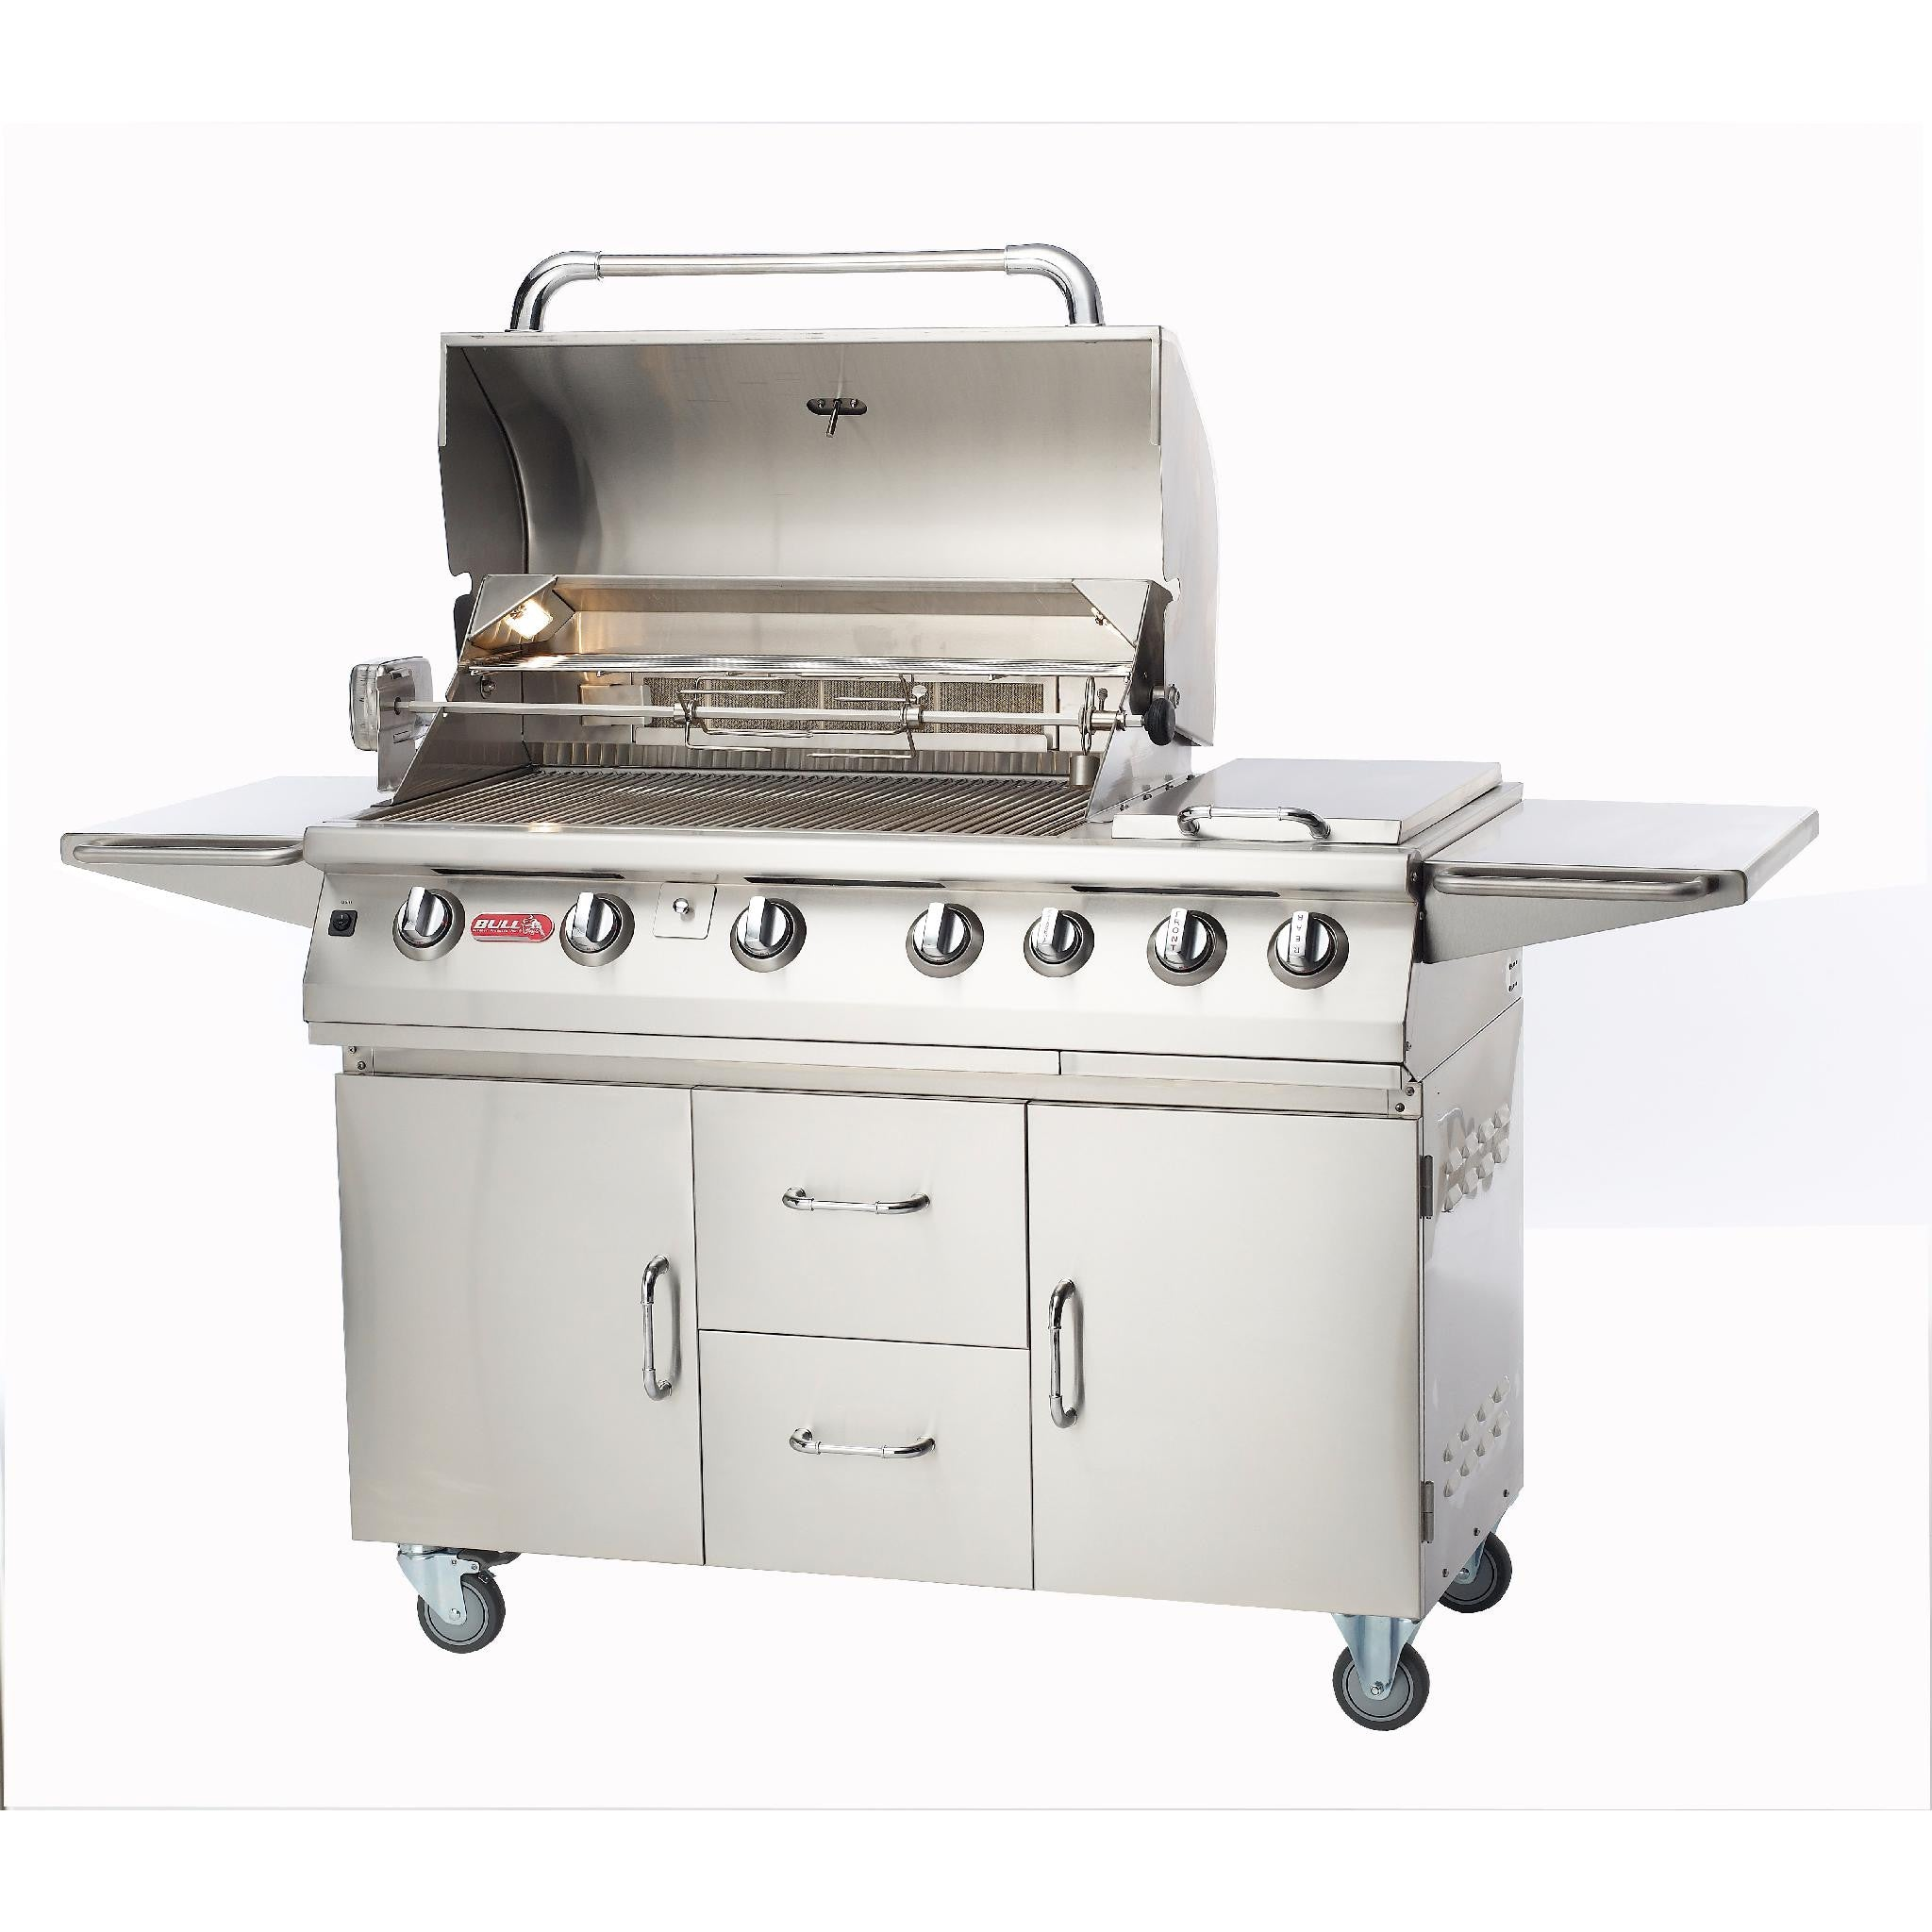 Propane Or Natural Gas Grill Better